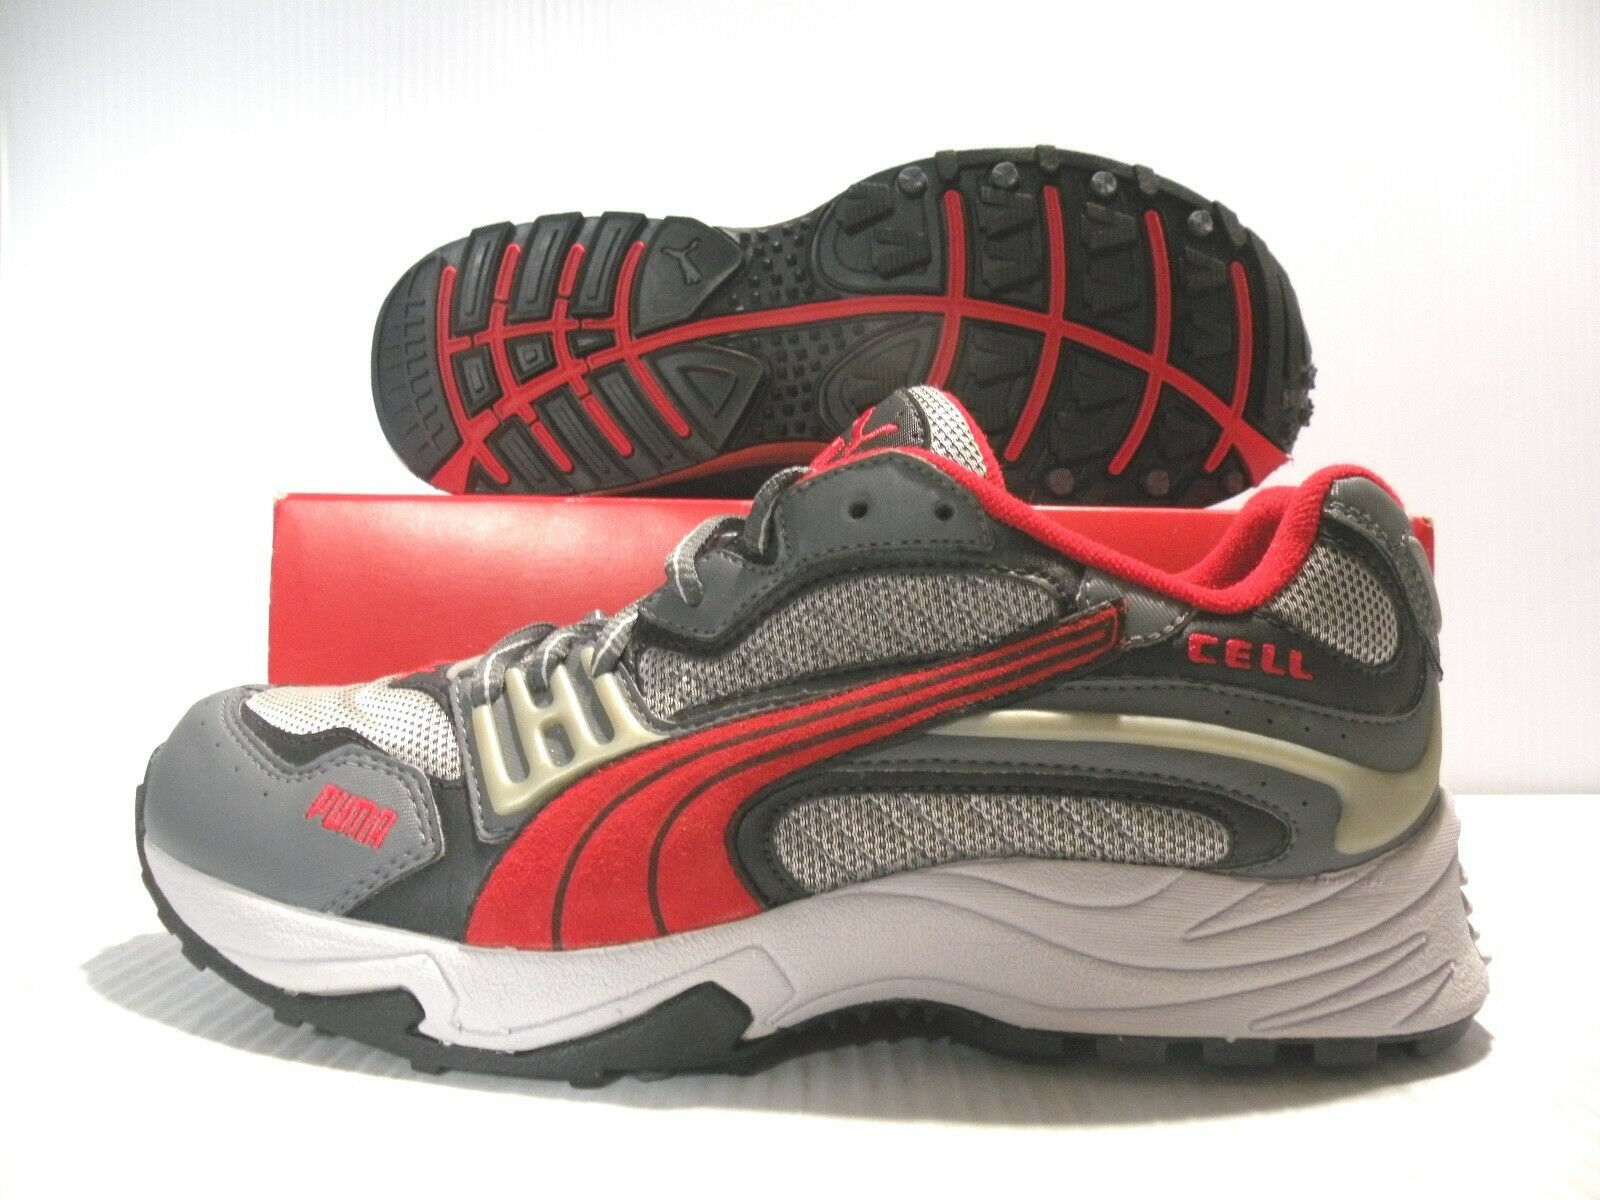 PUMA XC EXT CELL LOW SNEAKERS VINTAGE MEN SHOES GRAY/RED 181193-02 SIZE 6 NEW